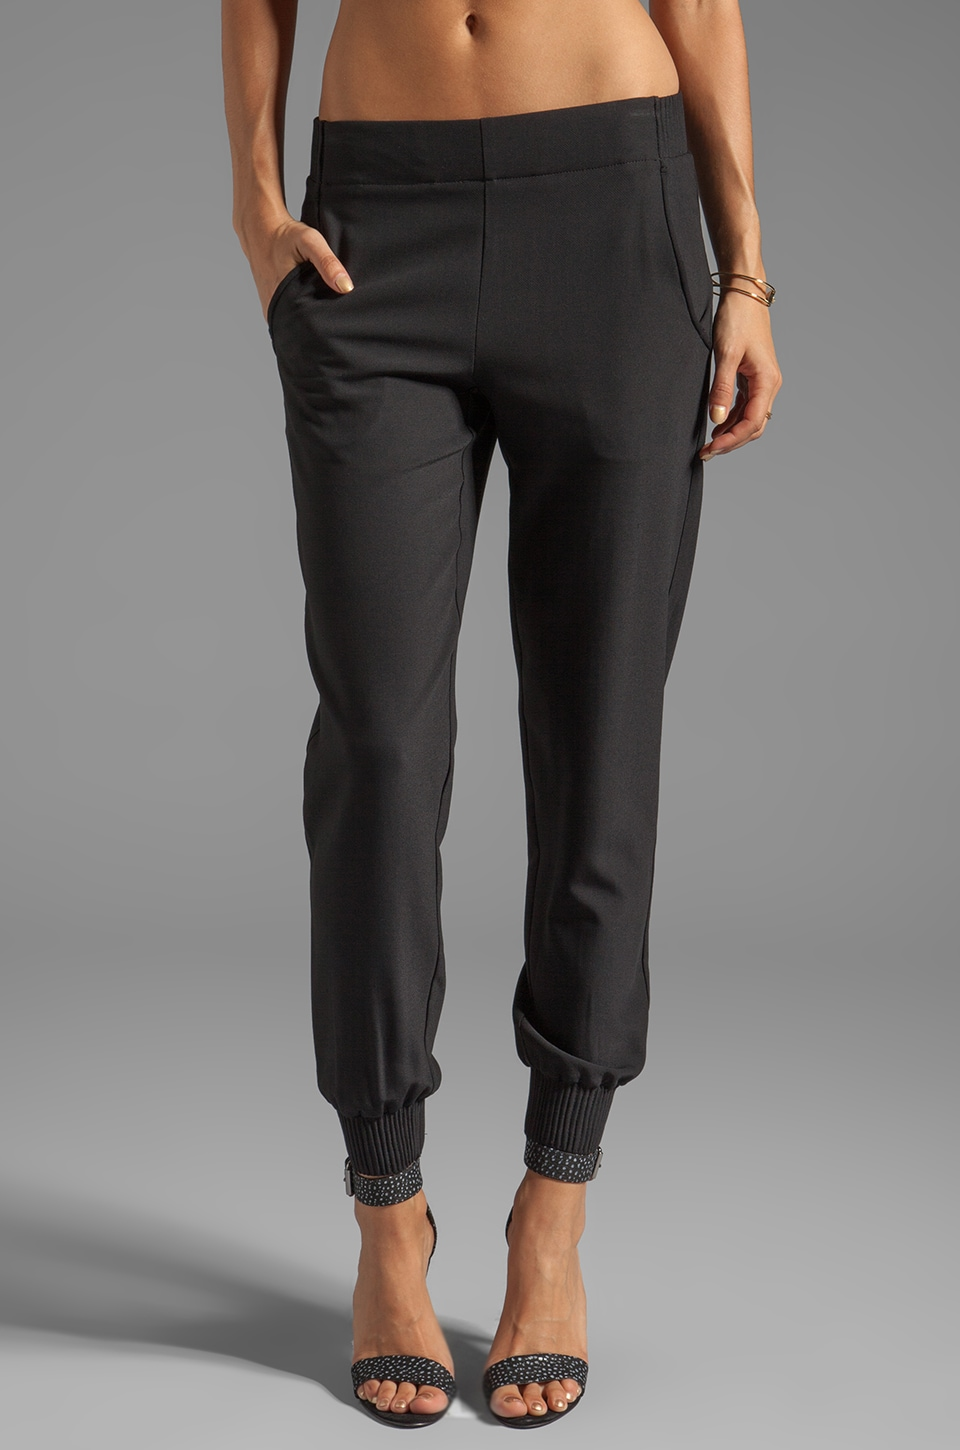 Theory Persha Slim Jogger Pant in Black